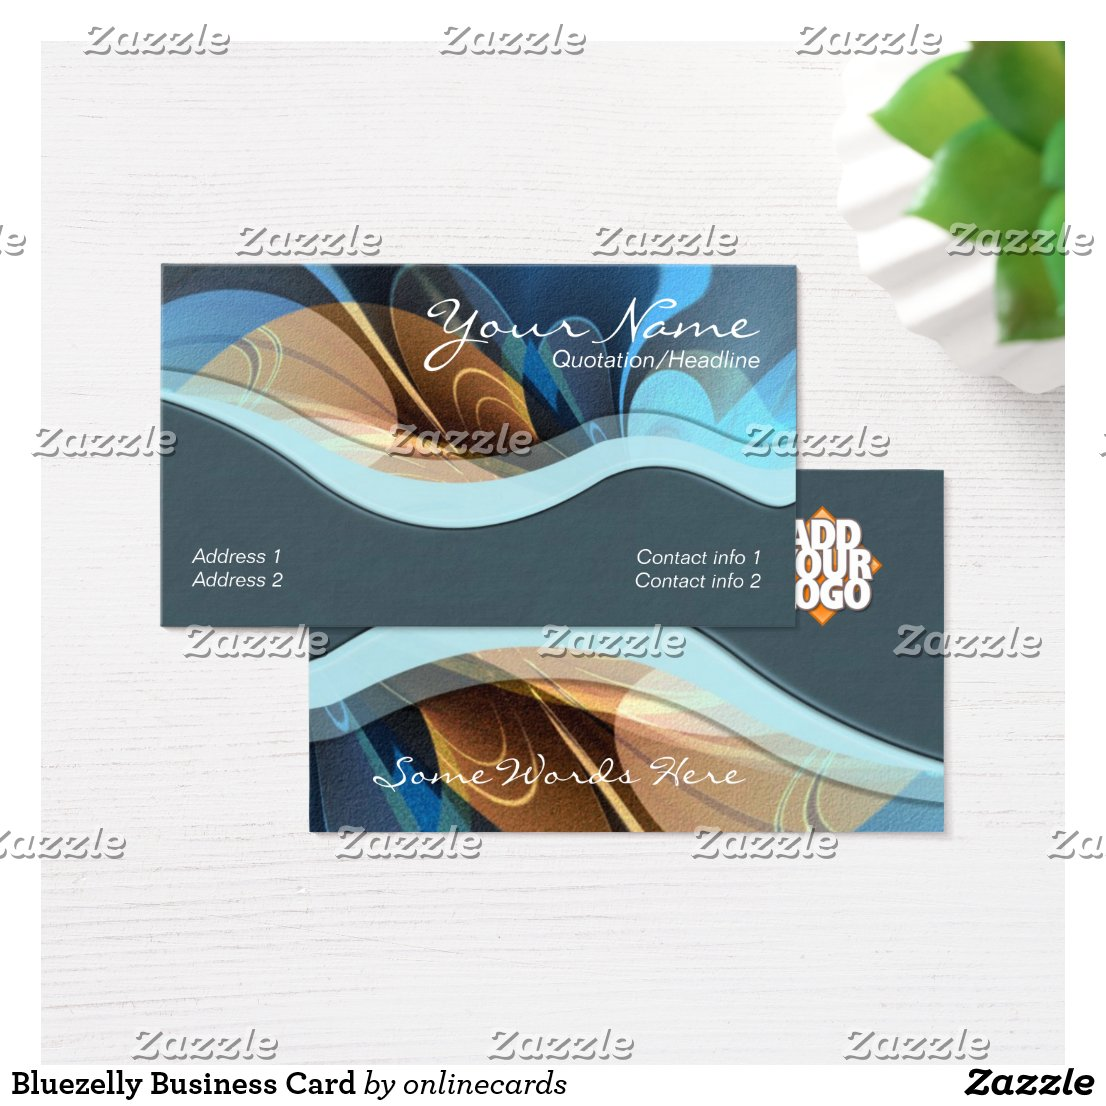 Bluezelly Business Card